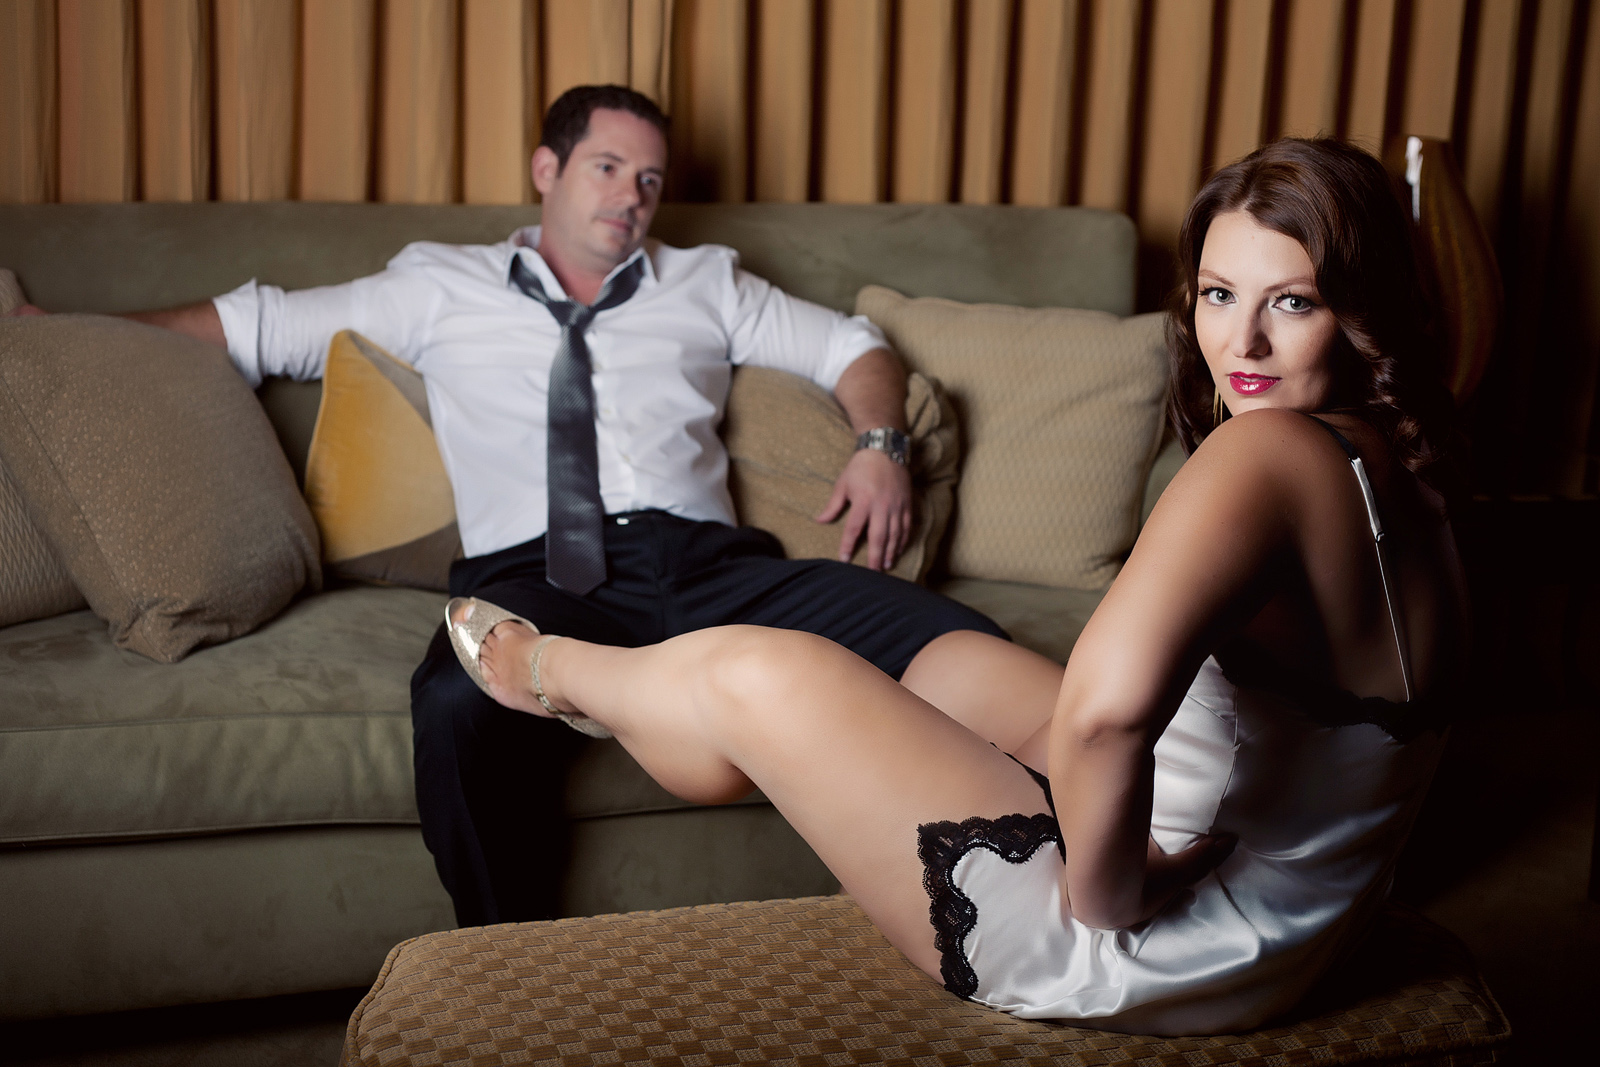 Mad men style boudoir photography shoot for a couple.